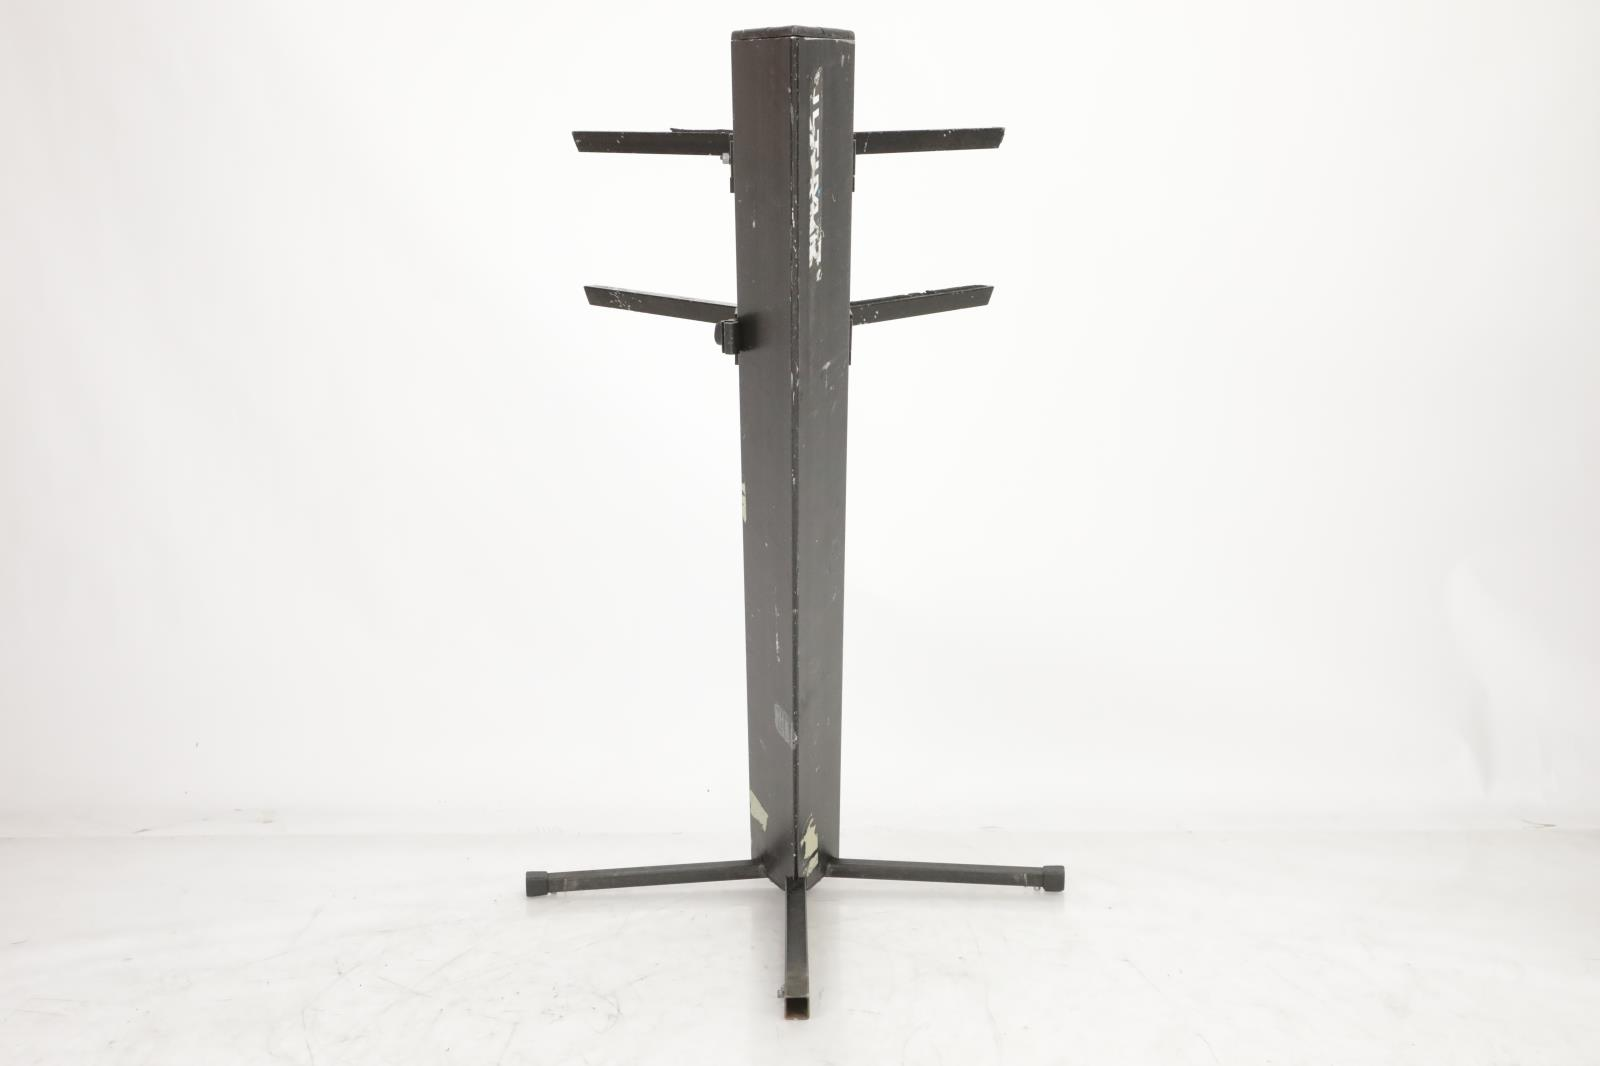 Ultimate Support Ax48bp Pro Apex Series Double Tier